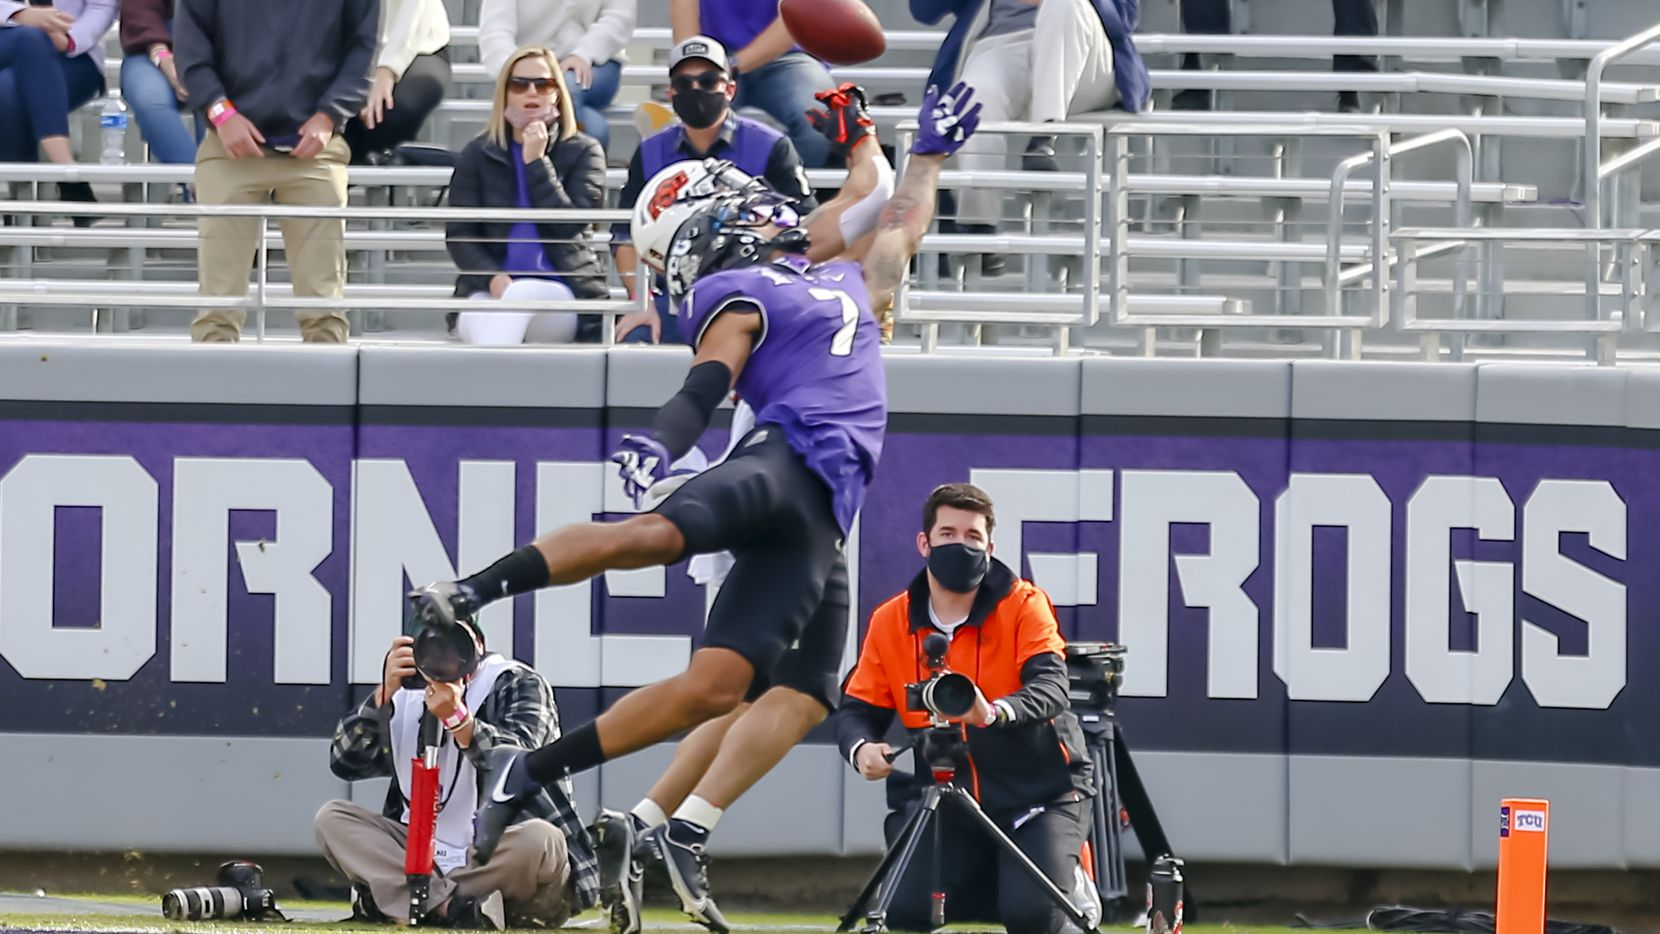 TCU safety Trevon Moehrig (7) deflects a pass during a game against Oklahoma State on Dec. 5, 2020, at Amon G. Carter Stadium in Fort Worth. (Photo by Matthew Pearce/Icon Sportswire via Getty Images)